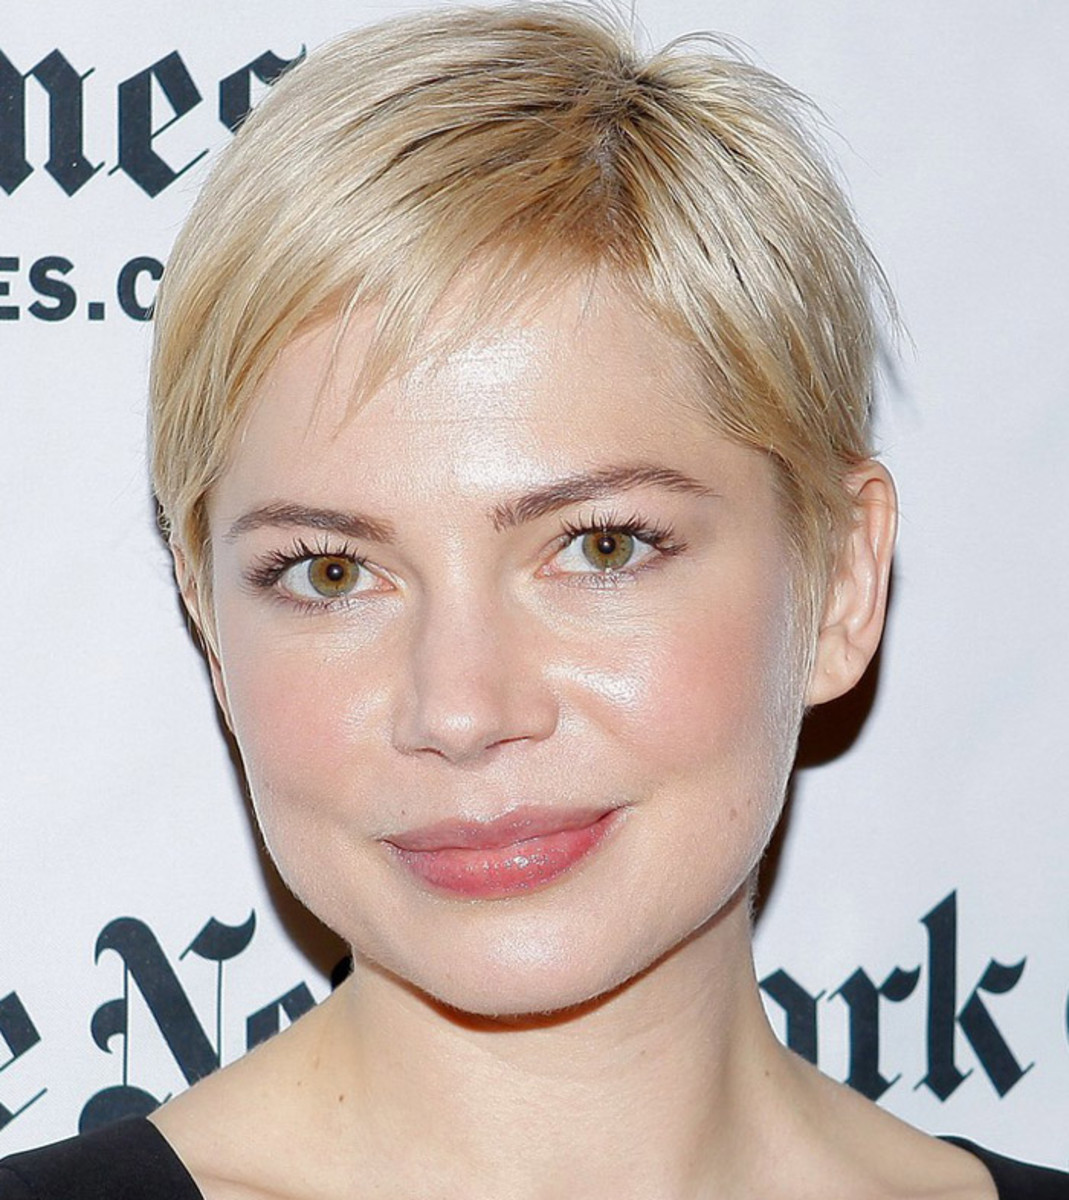 Brow bleaching: Michelle Williams has a great balance between hair and brow colour. Lighter might make her brows seem invisible.